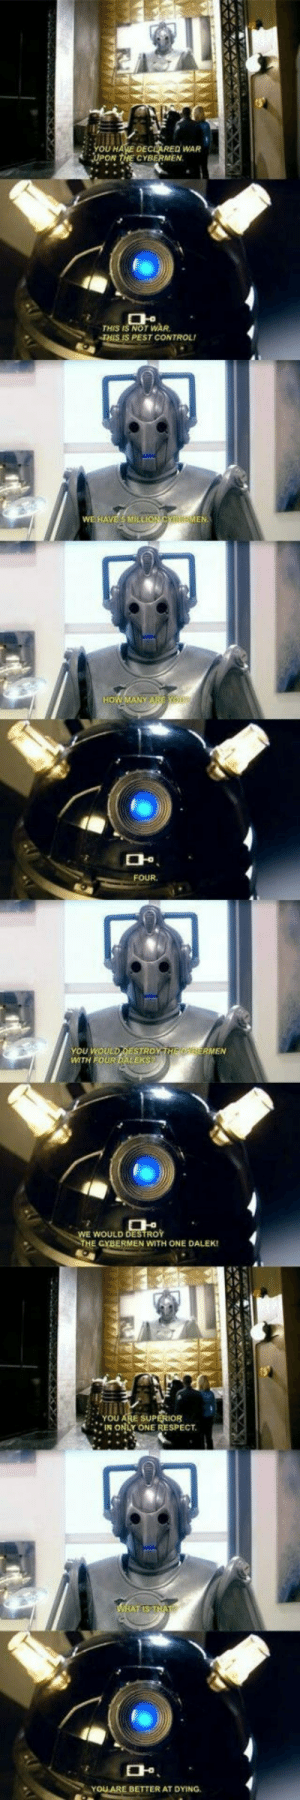 Savage Level: Dalek: DEC REQ WAR  CYBERMEN.  THIS IS NOT WAR  THIS IS PEST CONTROL  머.  FOUR  YOU WOULD DESTROY  You wou  WTH FOUR DALEKS  WOULD DESTROY  THE CYBERMEN WITH ONE DALEK!  YOU ARE SUP  IN ONLY ONE RESPECT  며  YOLARE BETTER AT DYING. Savage Level: Dalek